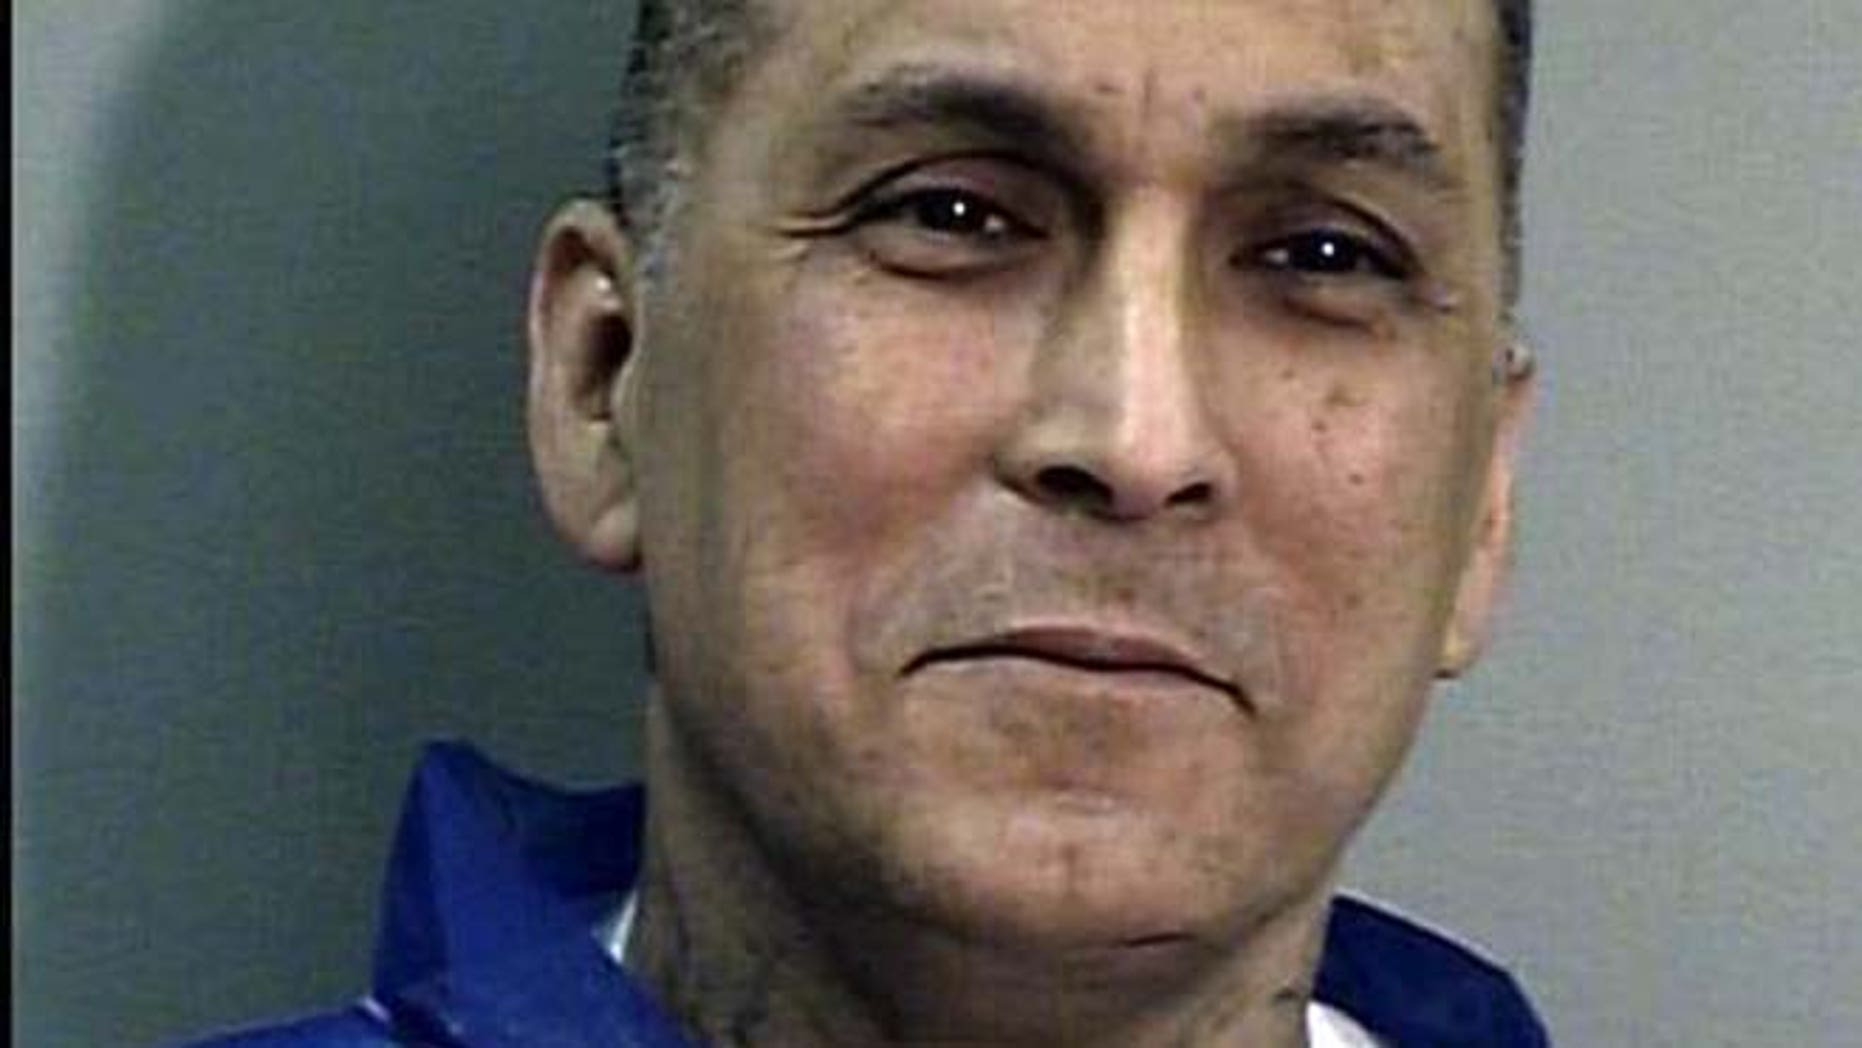 """This undated file photo from the California Department of Corrections and Rehabilitation shows Rene """"Boxer"""" Enriquez. The Los Angeles Police Department used an invalid court order and spent $22,000 to bring the imprisoned killer and former gang leader to speak to an exclusive dinner for private executives, according to a report released Friday."""